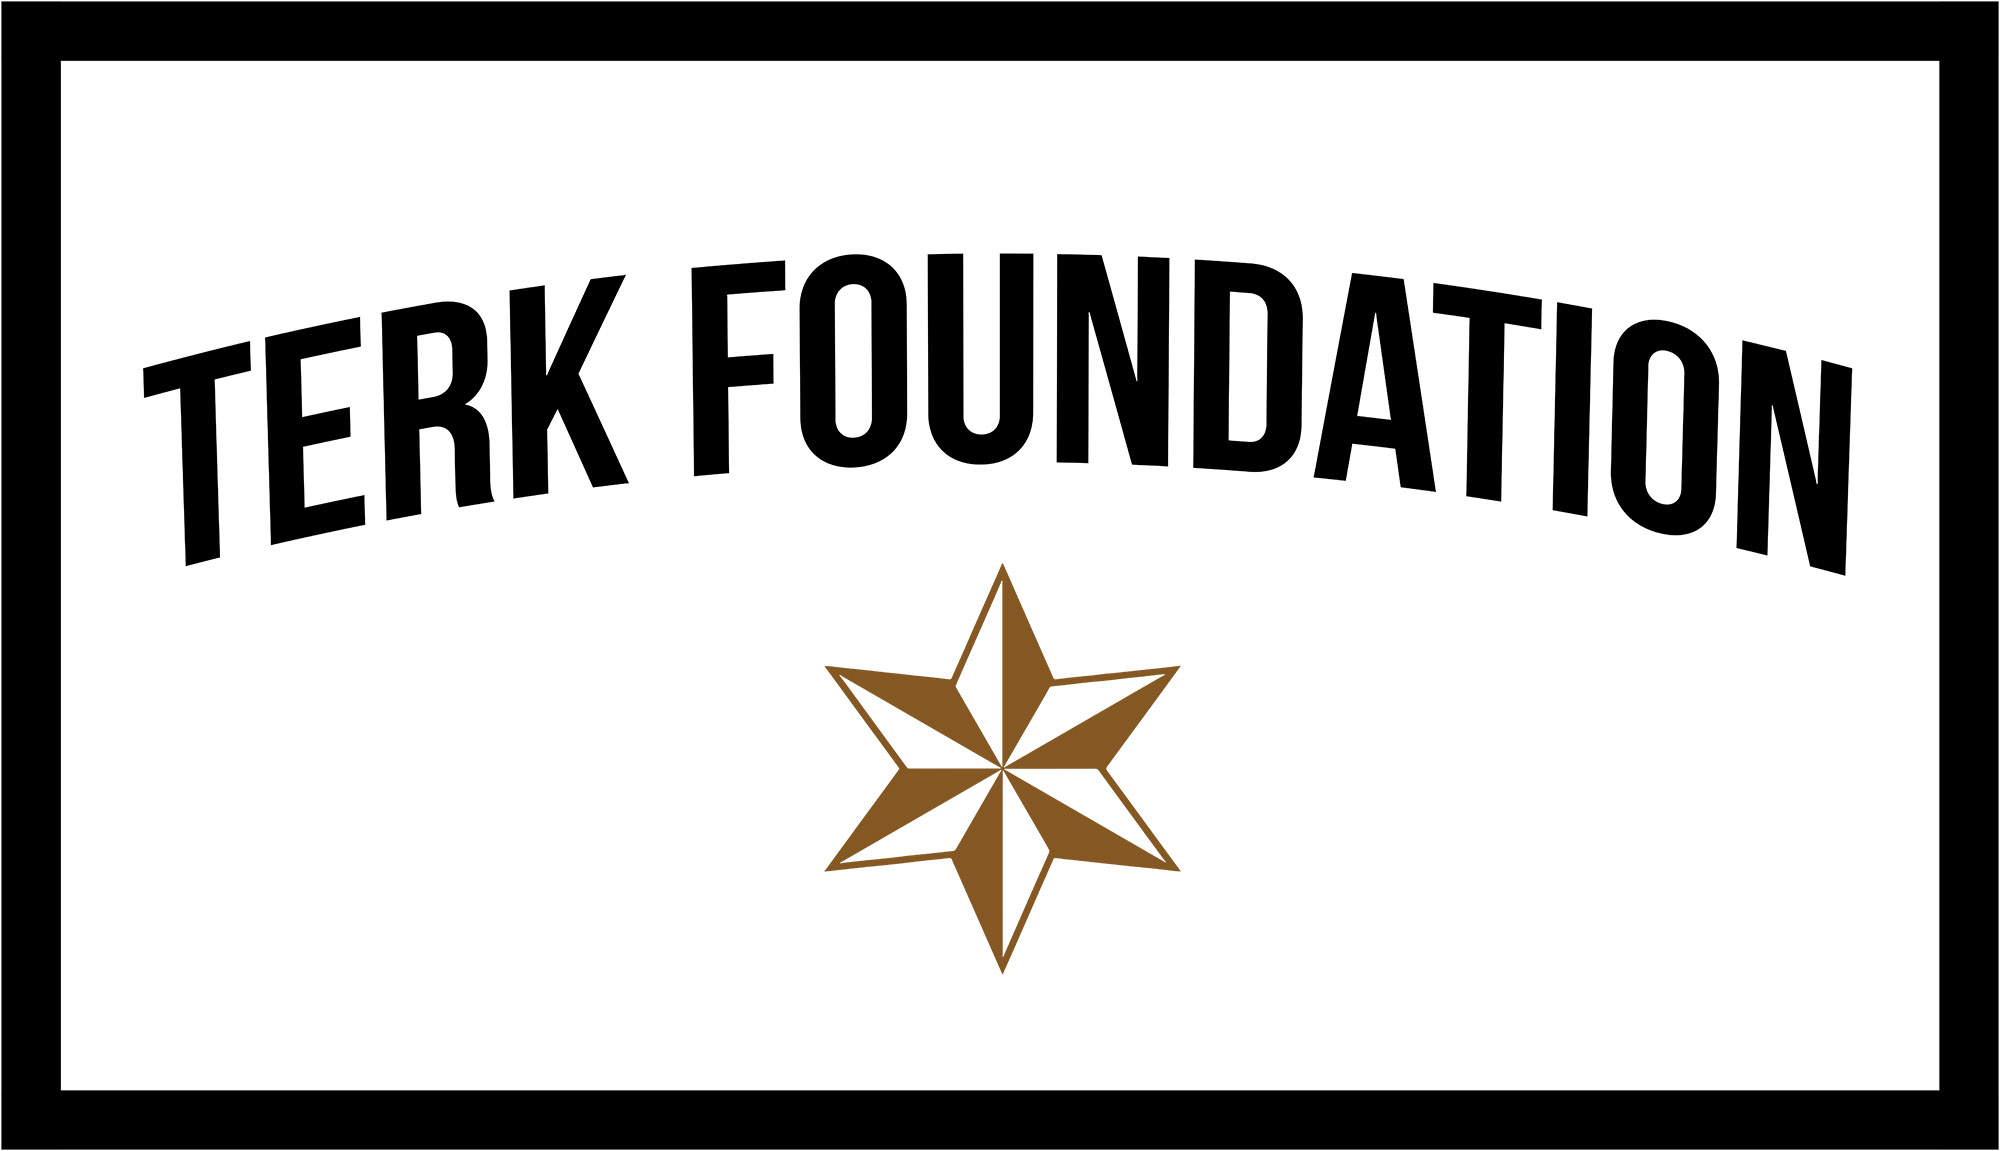 Terk Foundation